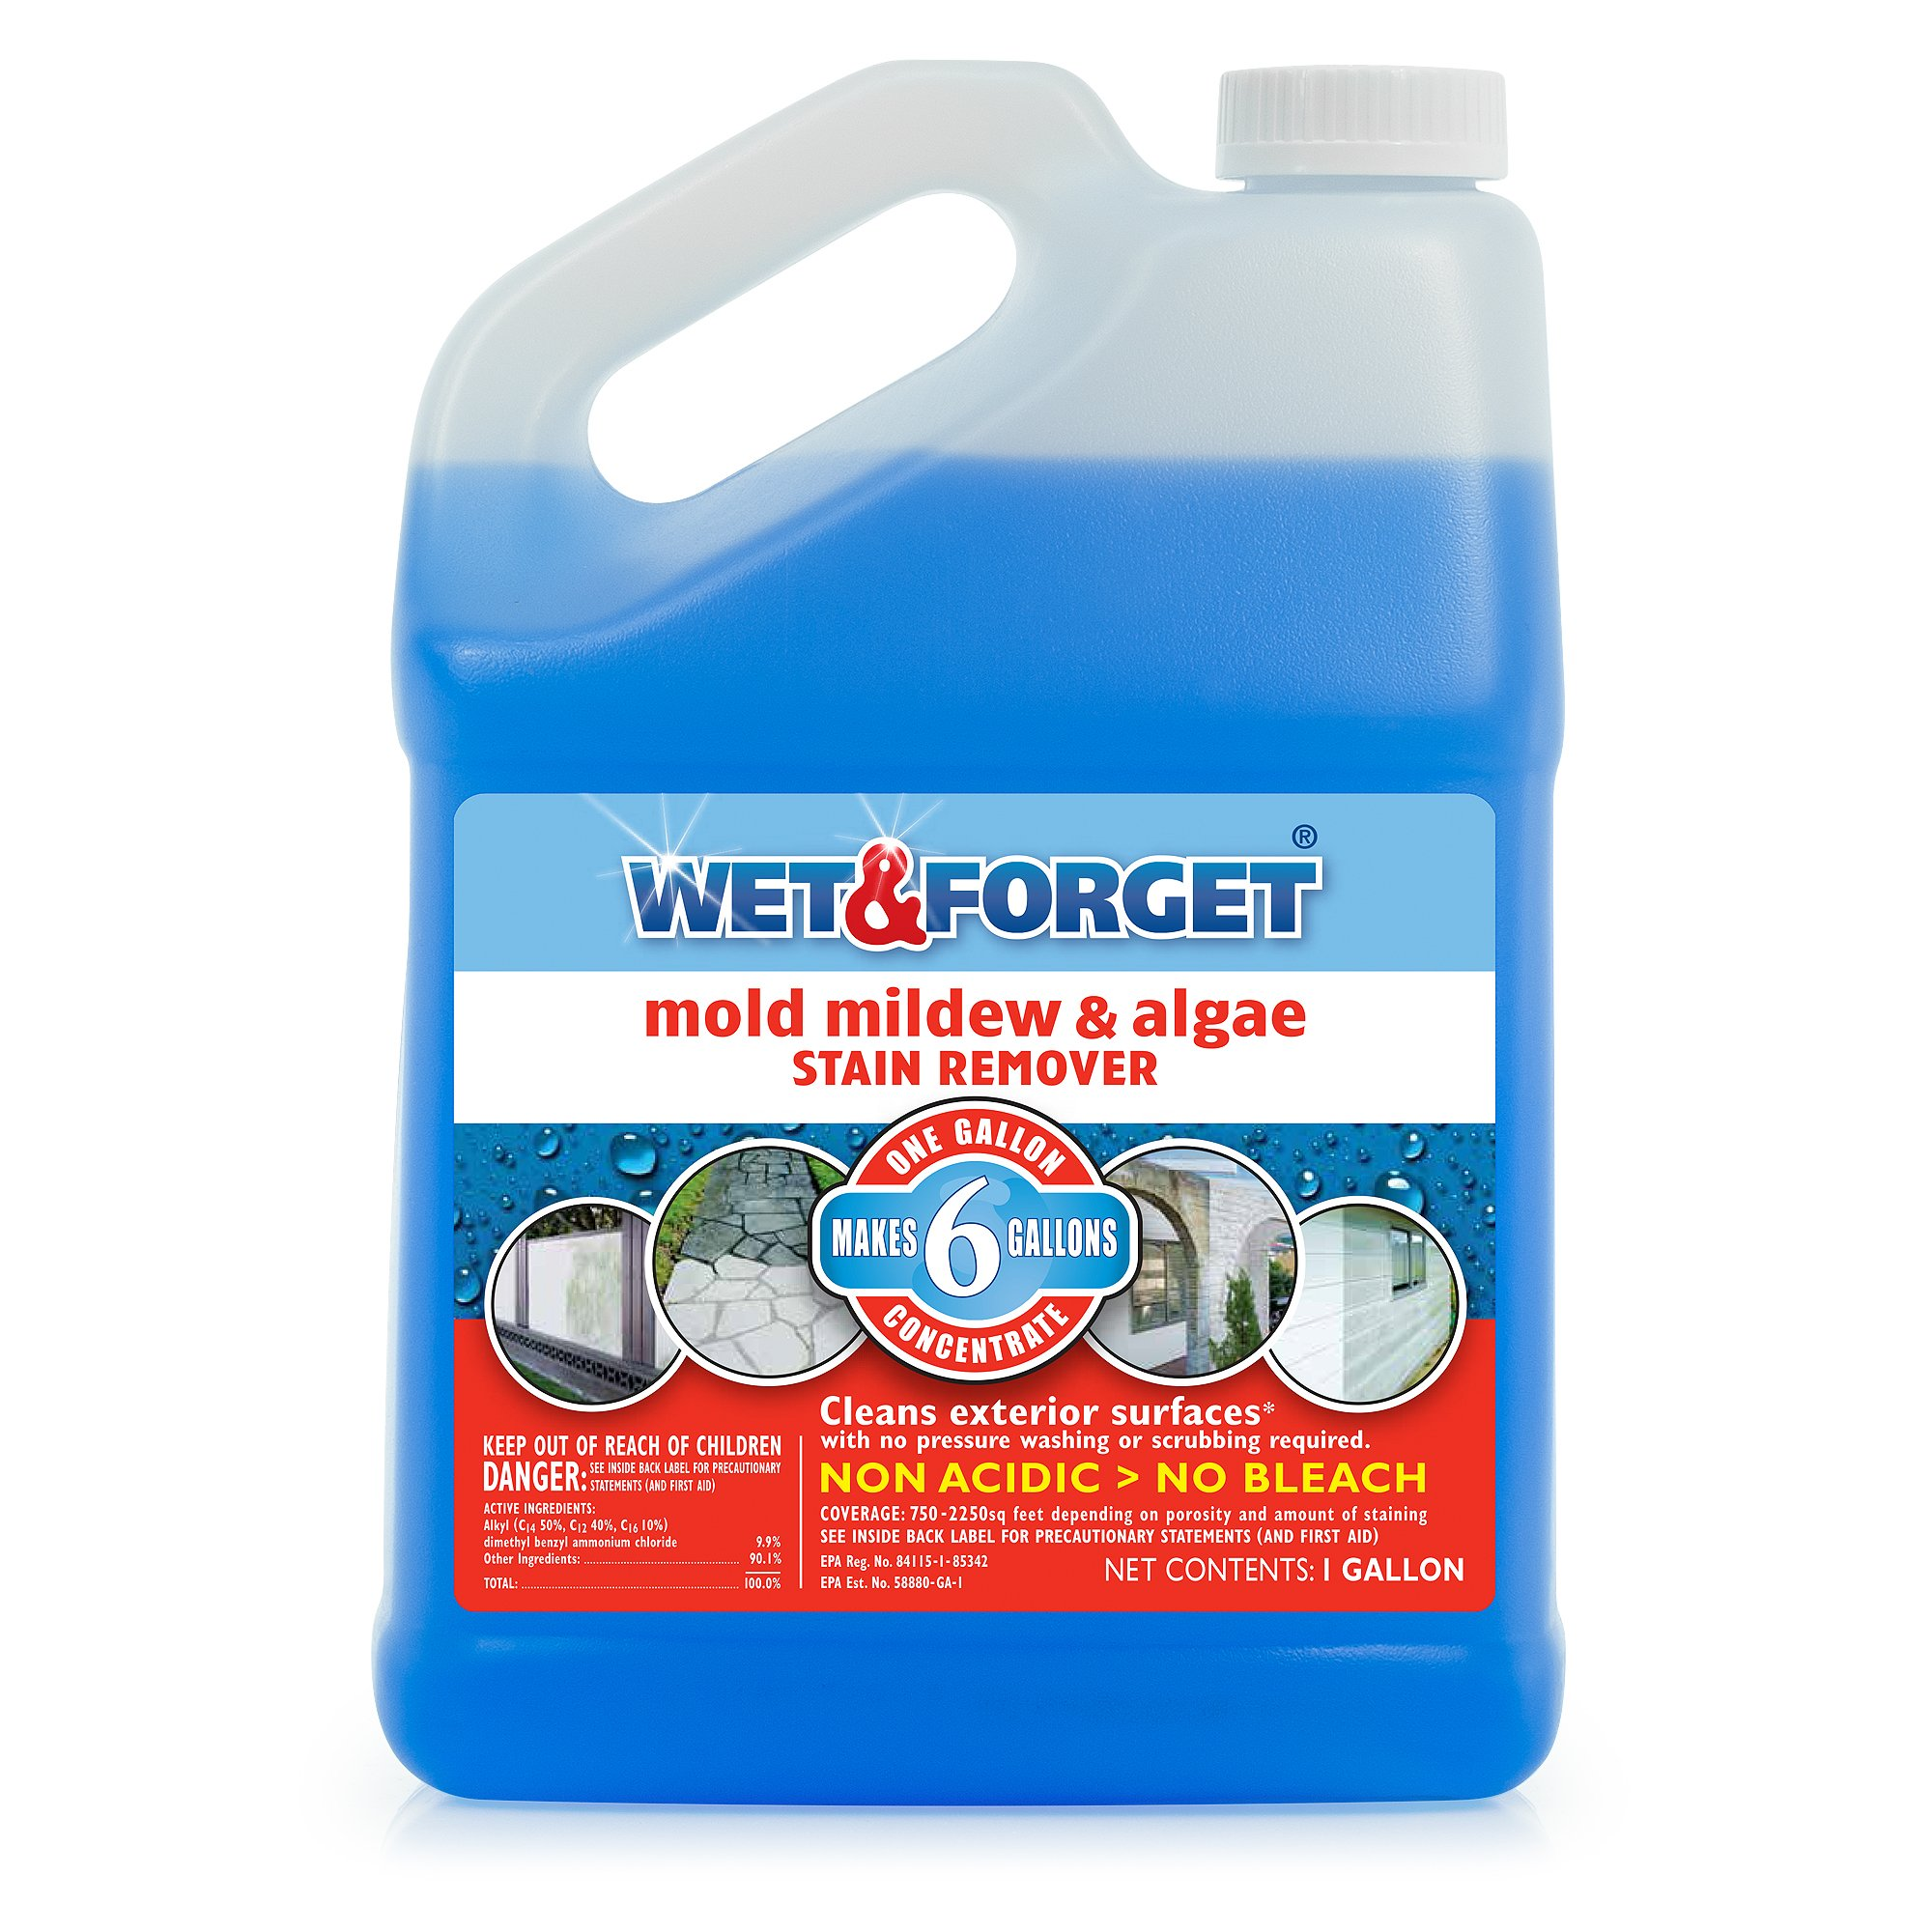 Wet & Forget Mold, Mildew & Algae Stain Remover, 1 Gallon